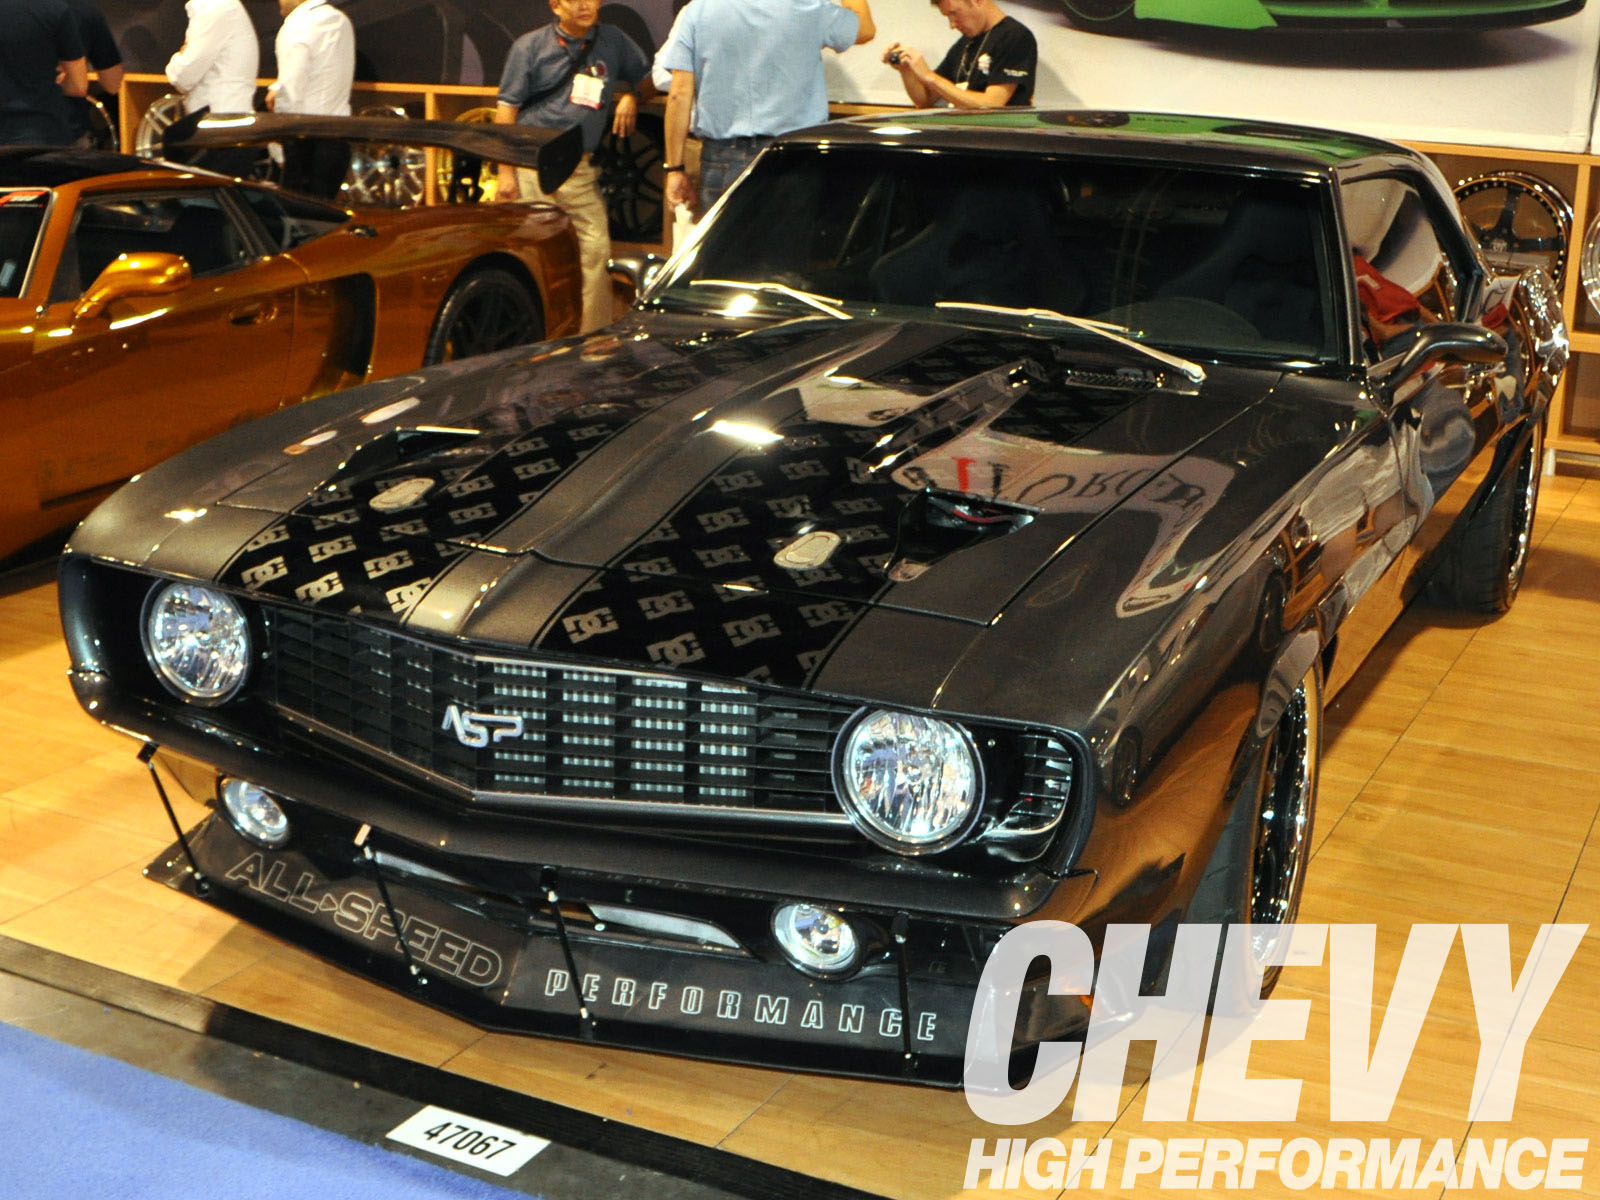 1002chp 001 Z 2009 Sema Show Vehicles